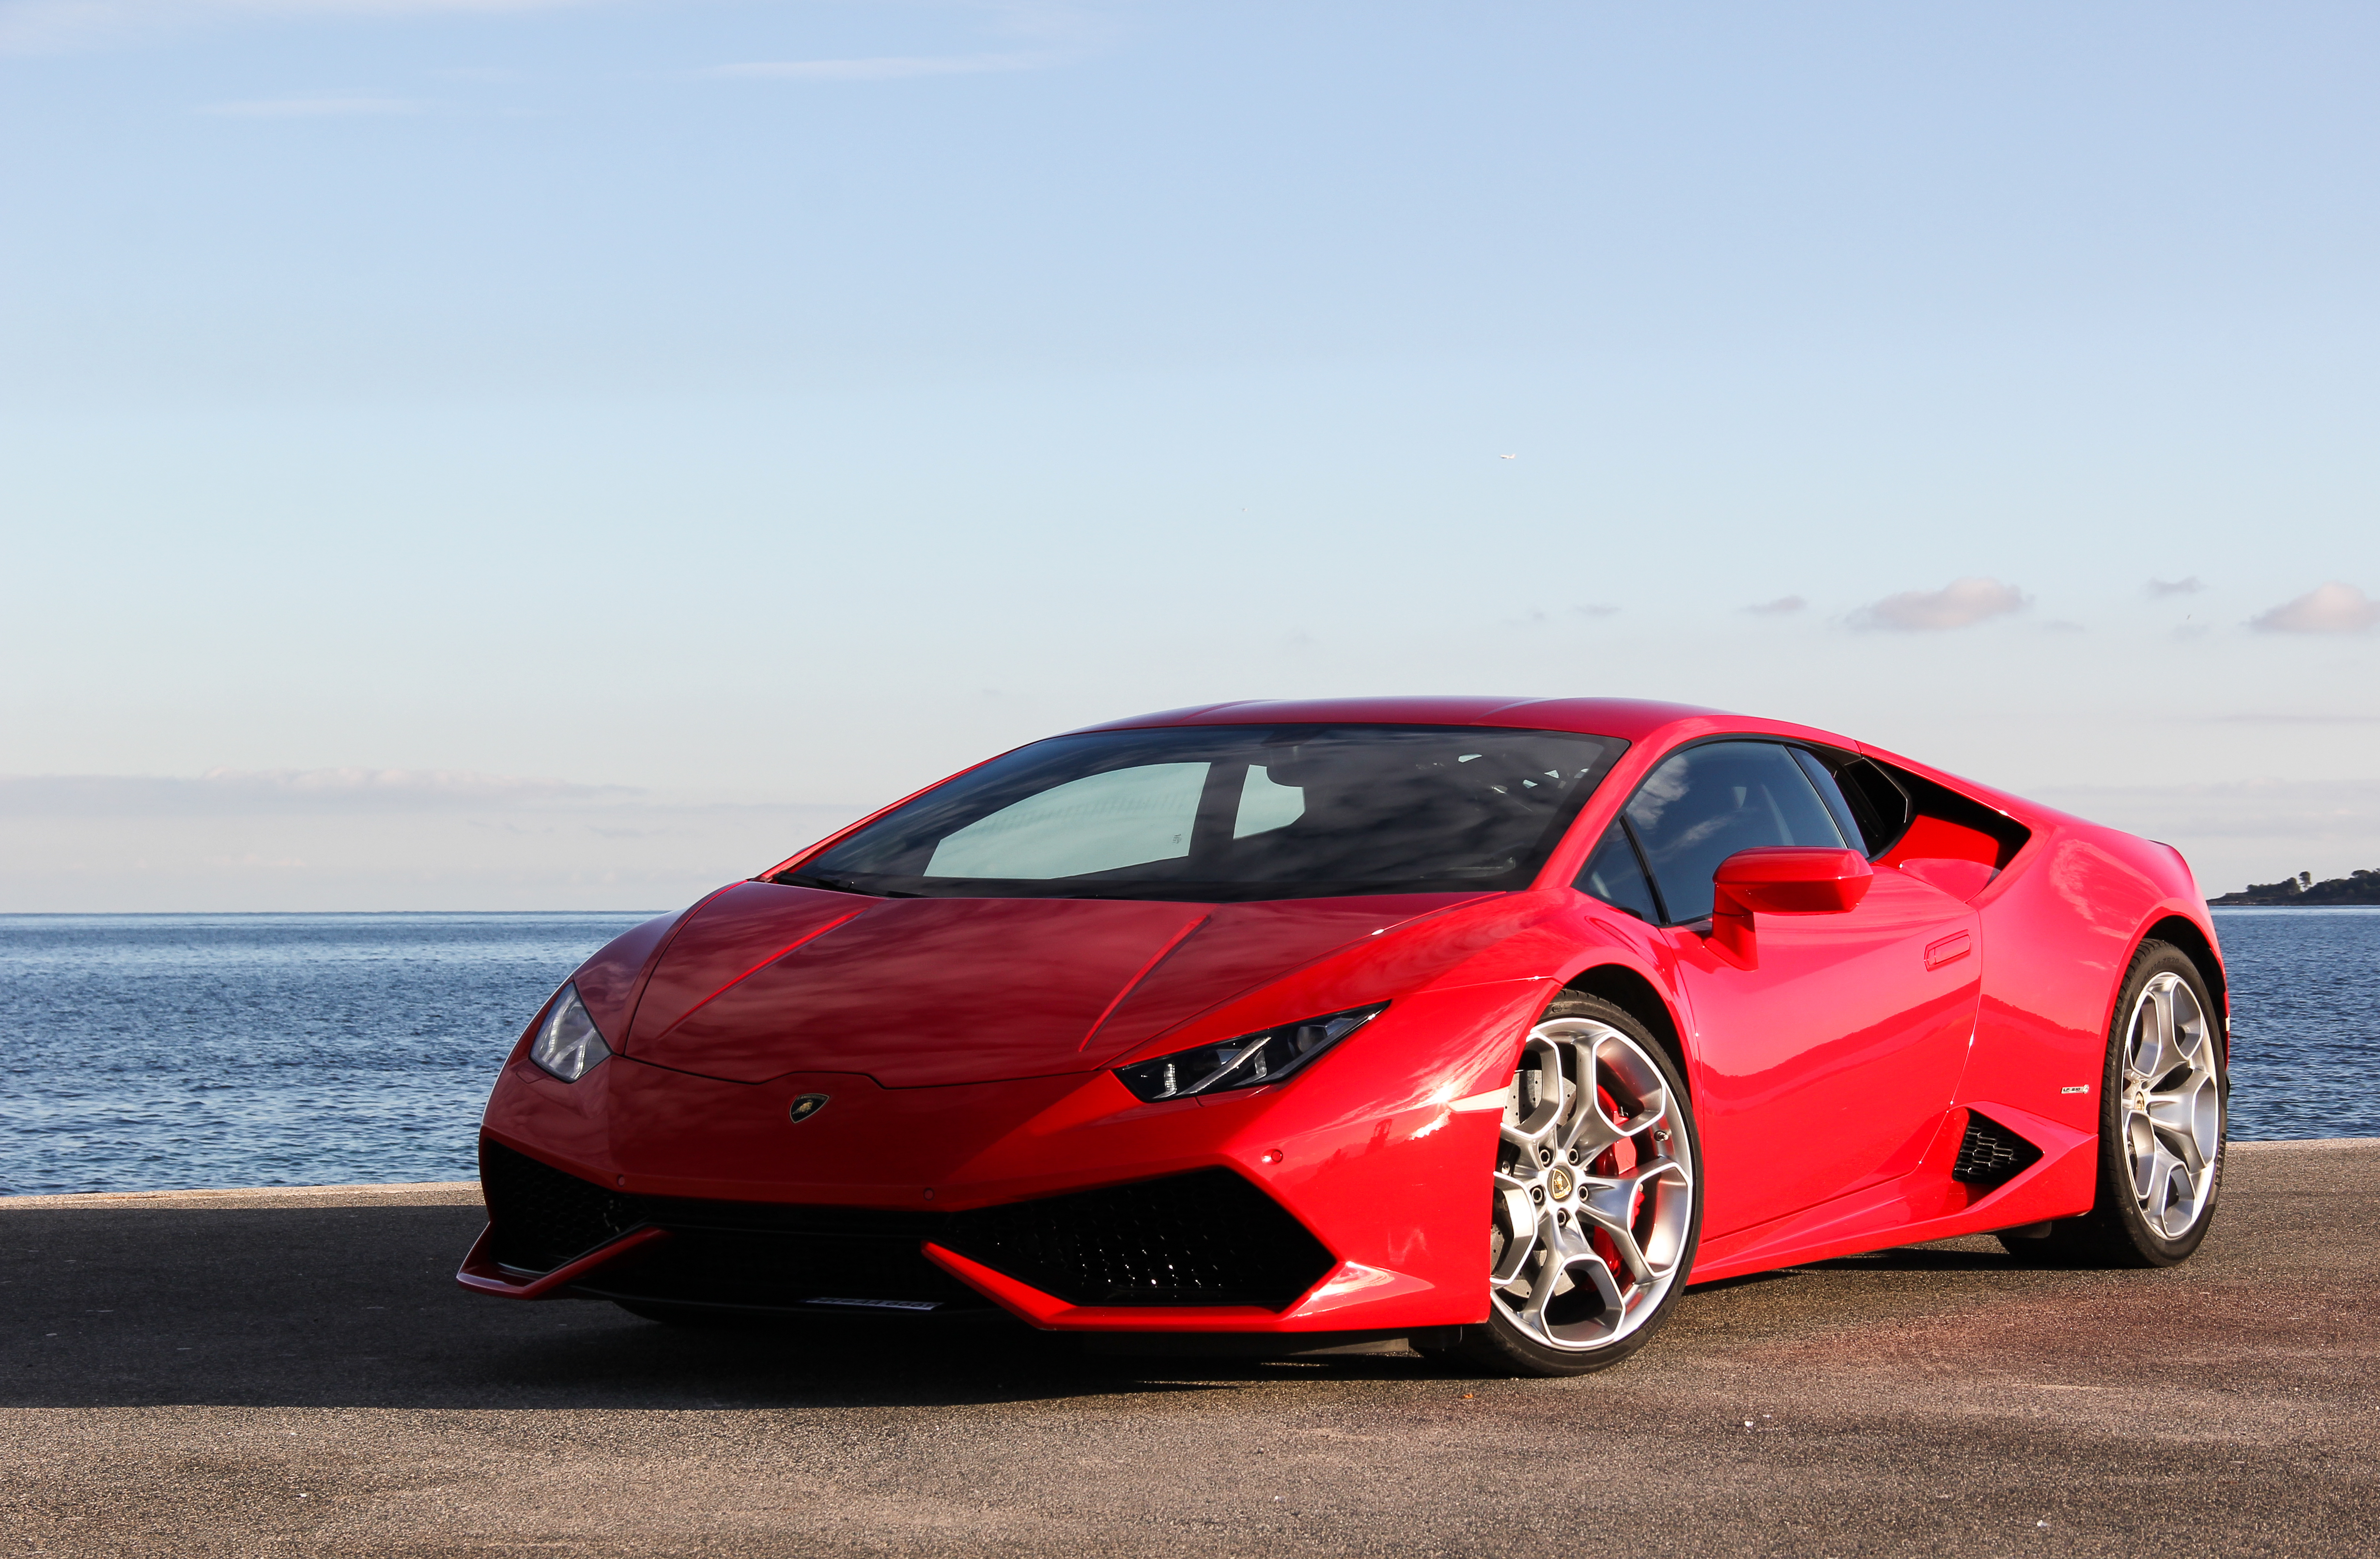 owner forums sale views speed jpg price automobiles for attachment gallardo click name by lamborghini image version larger size